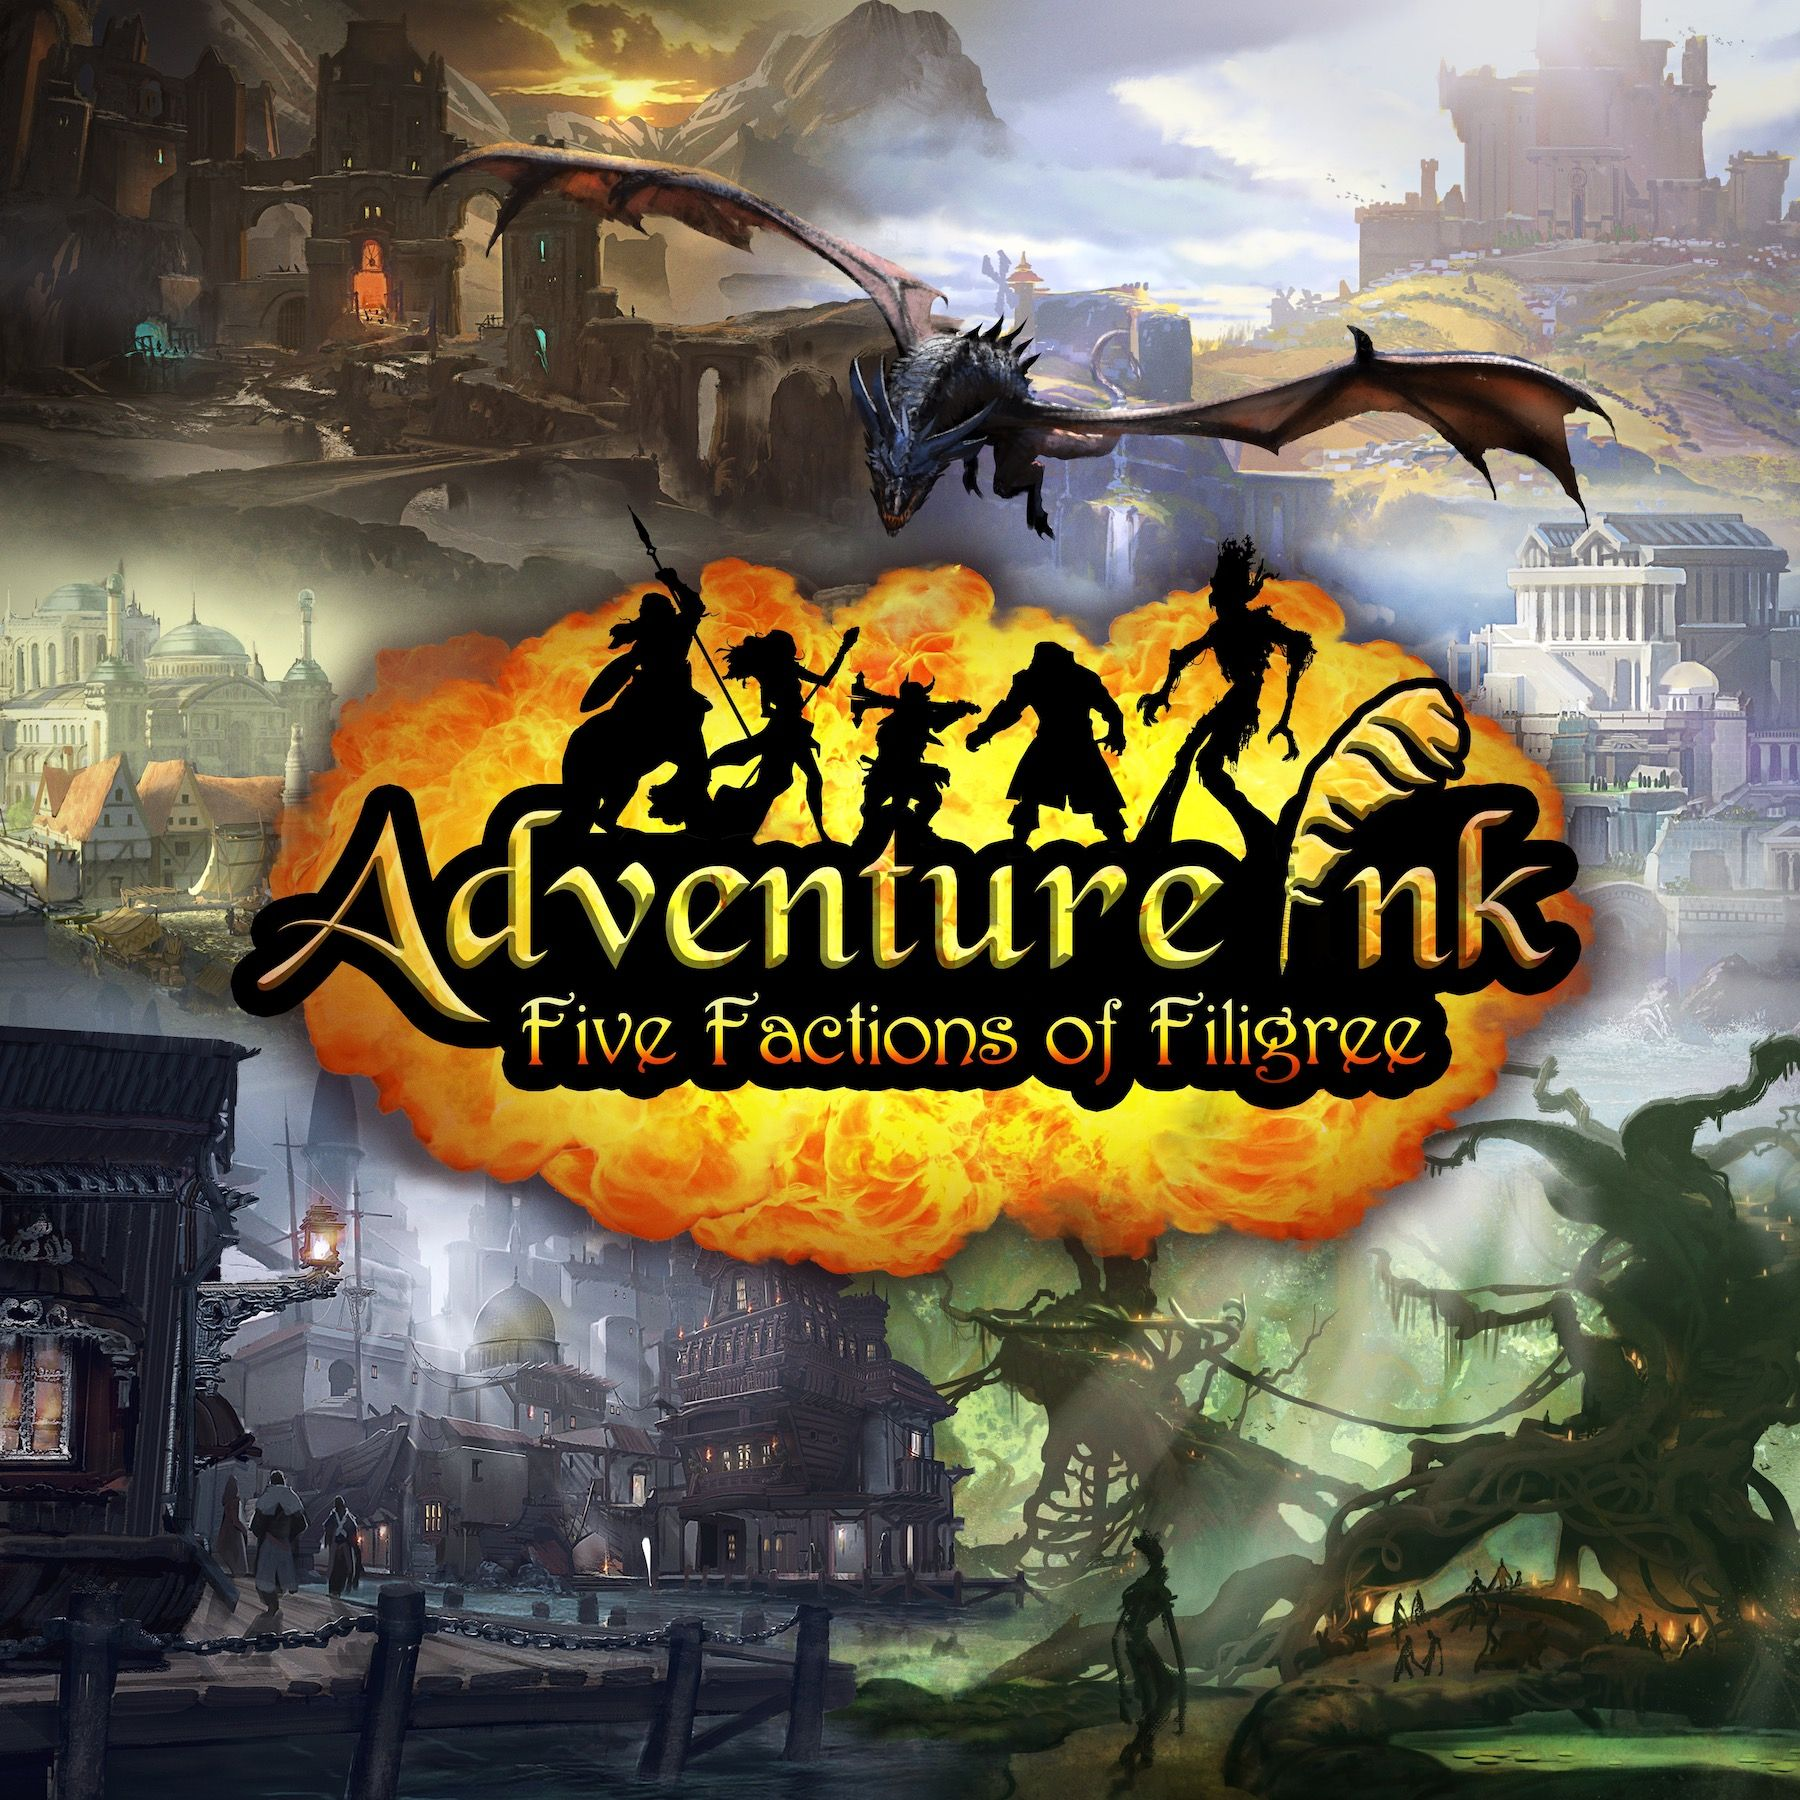 Main image for Adventure Ink: Five Factions of Filigree board game